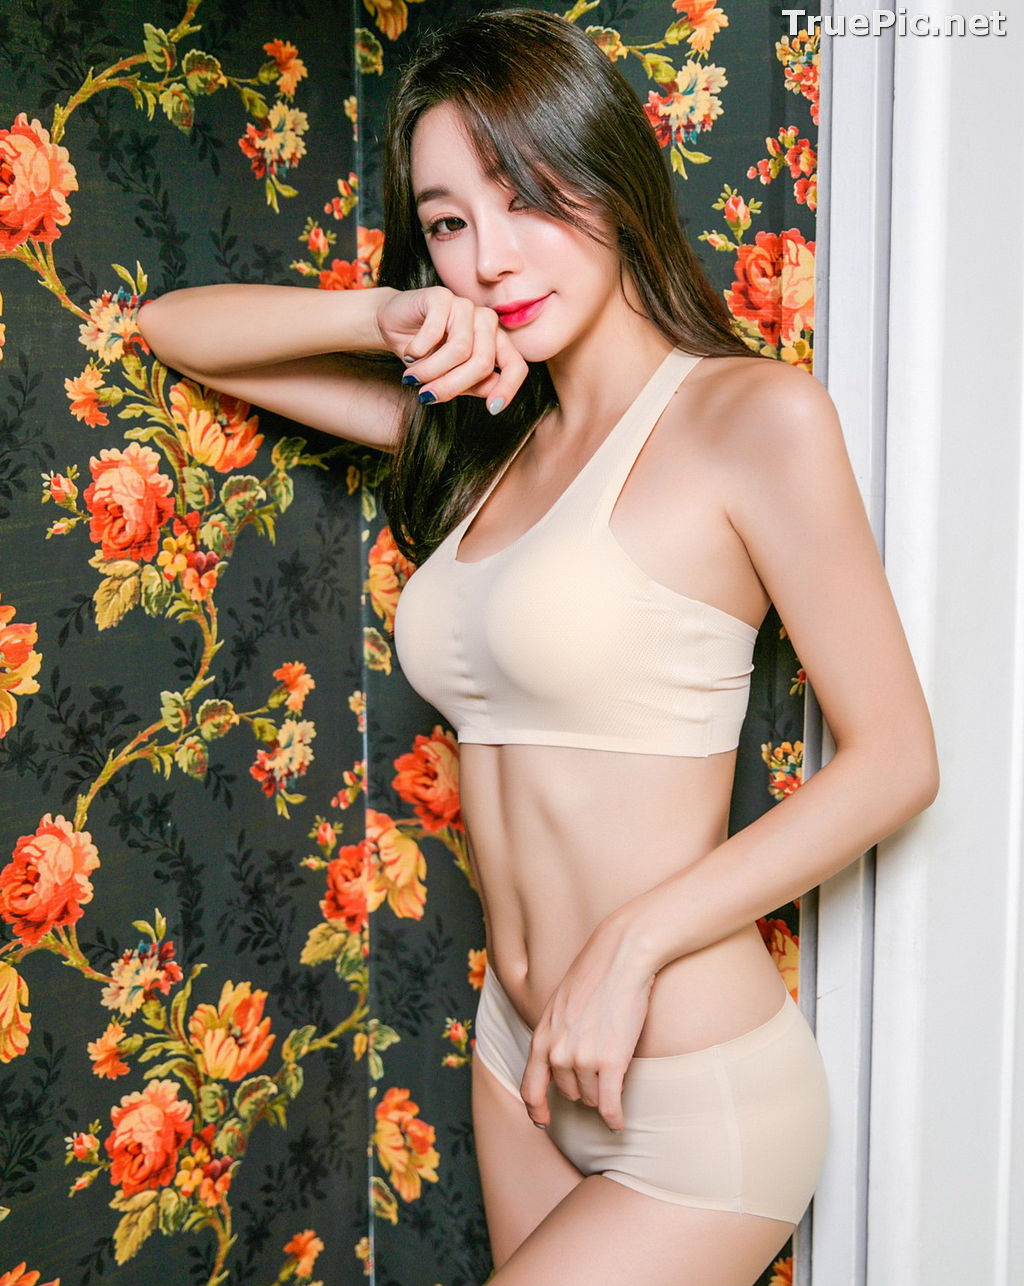 Image Hyun Kyung - Korean Fashion Model - Nude Color Undies - TruePic.net - Picture-5